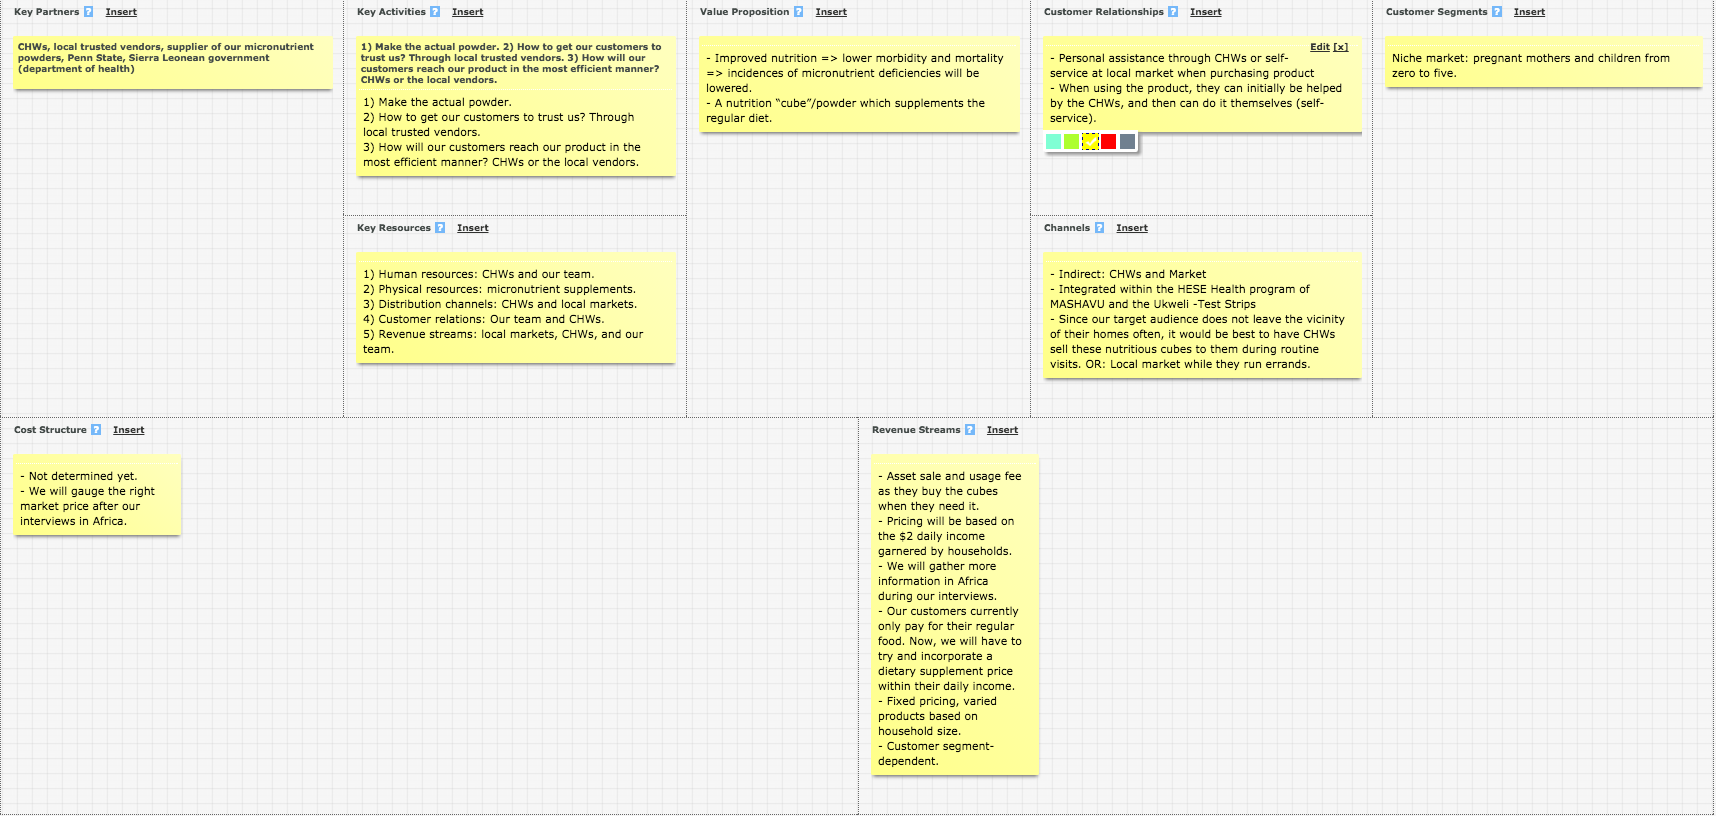 Tuesday, 5th April: Business Canvas | Dhruv Rao's HESE Blog